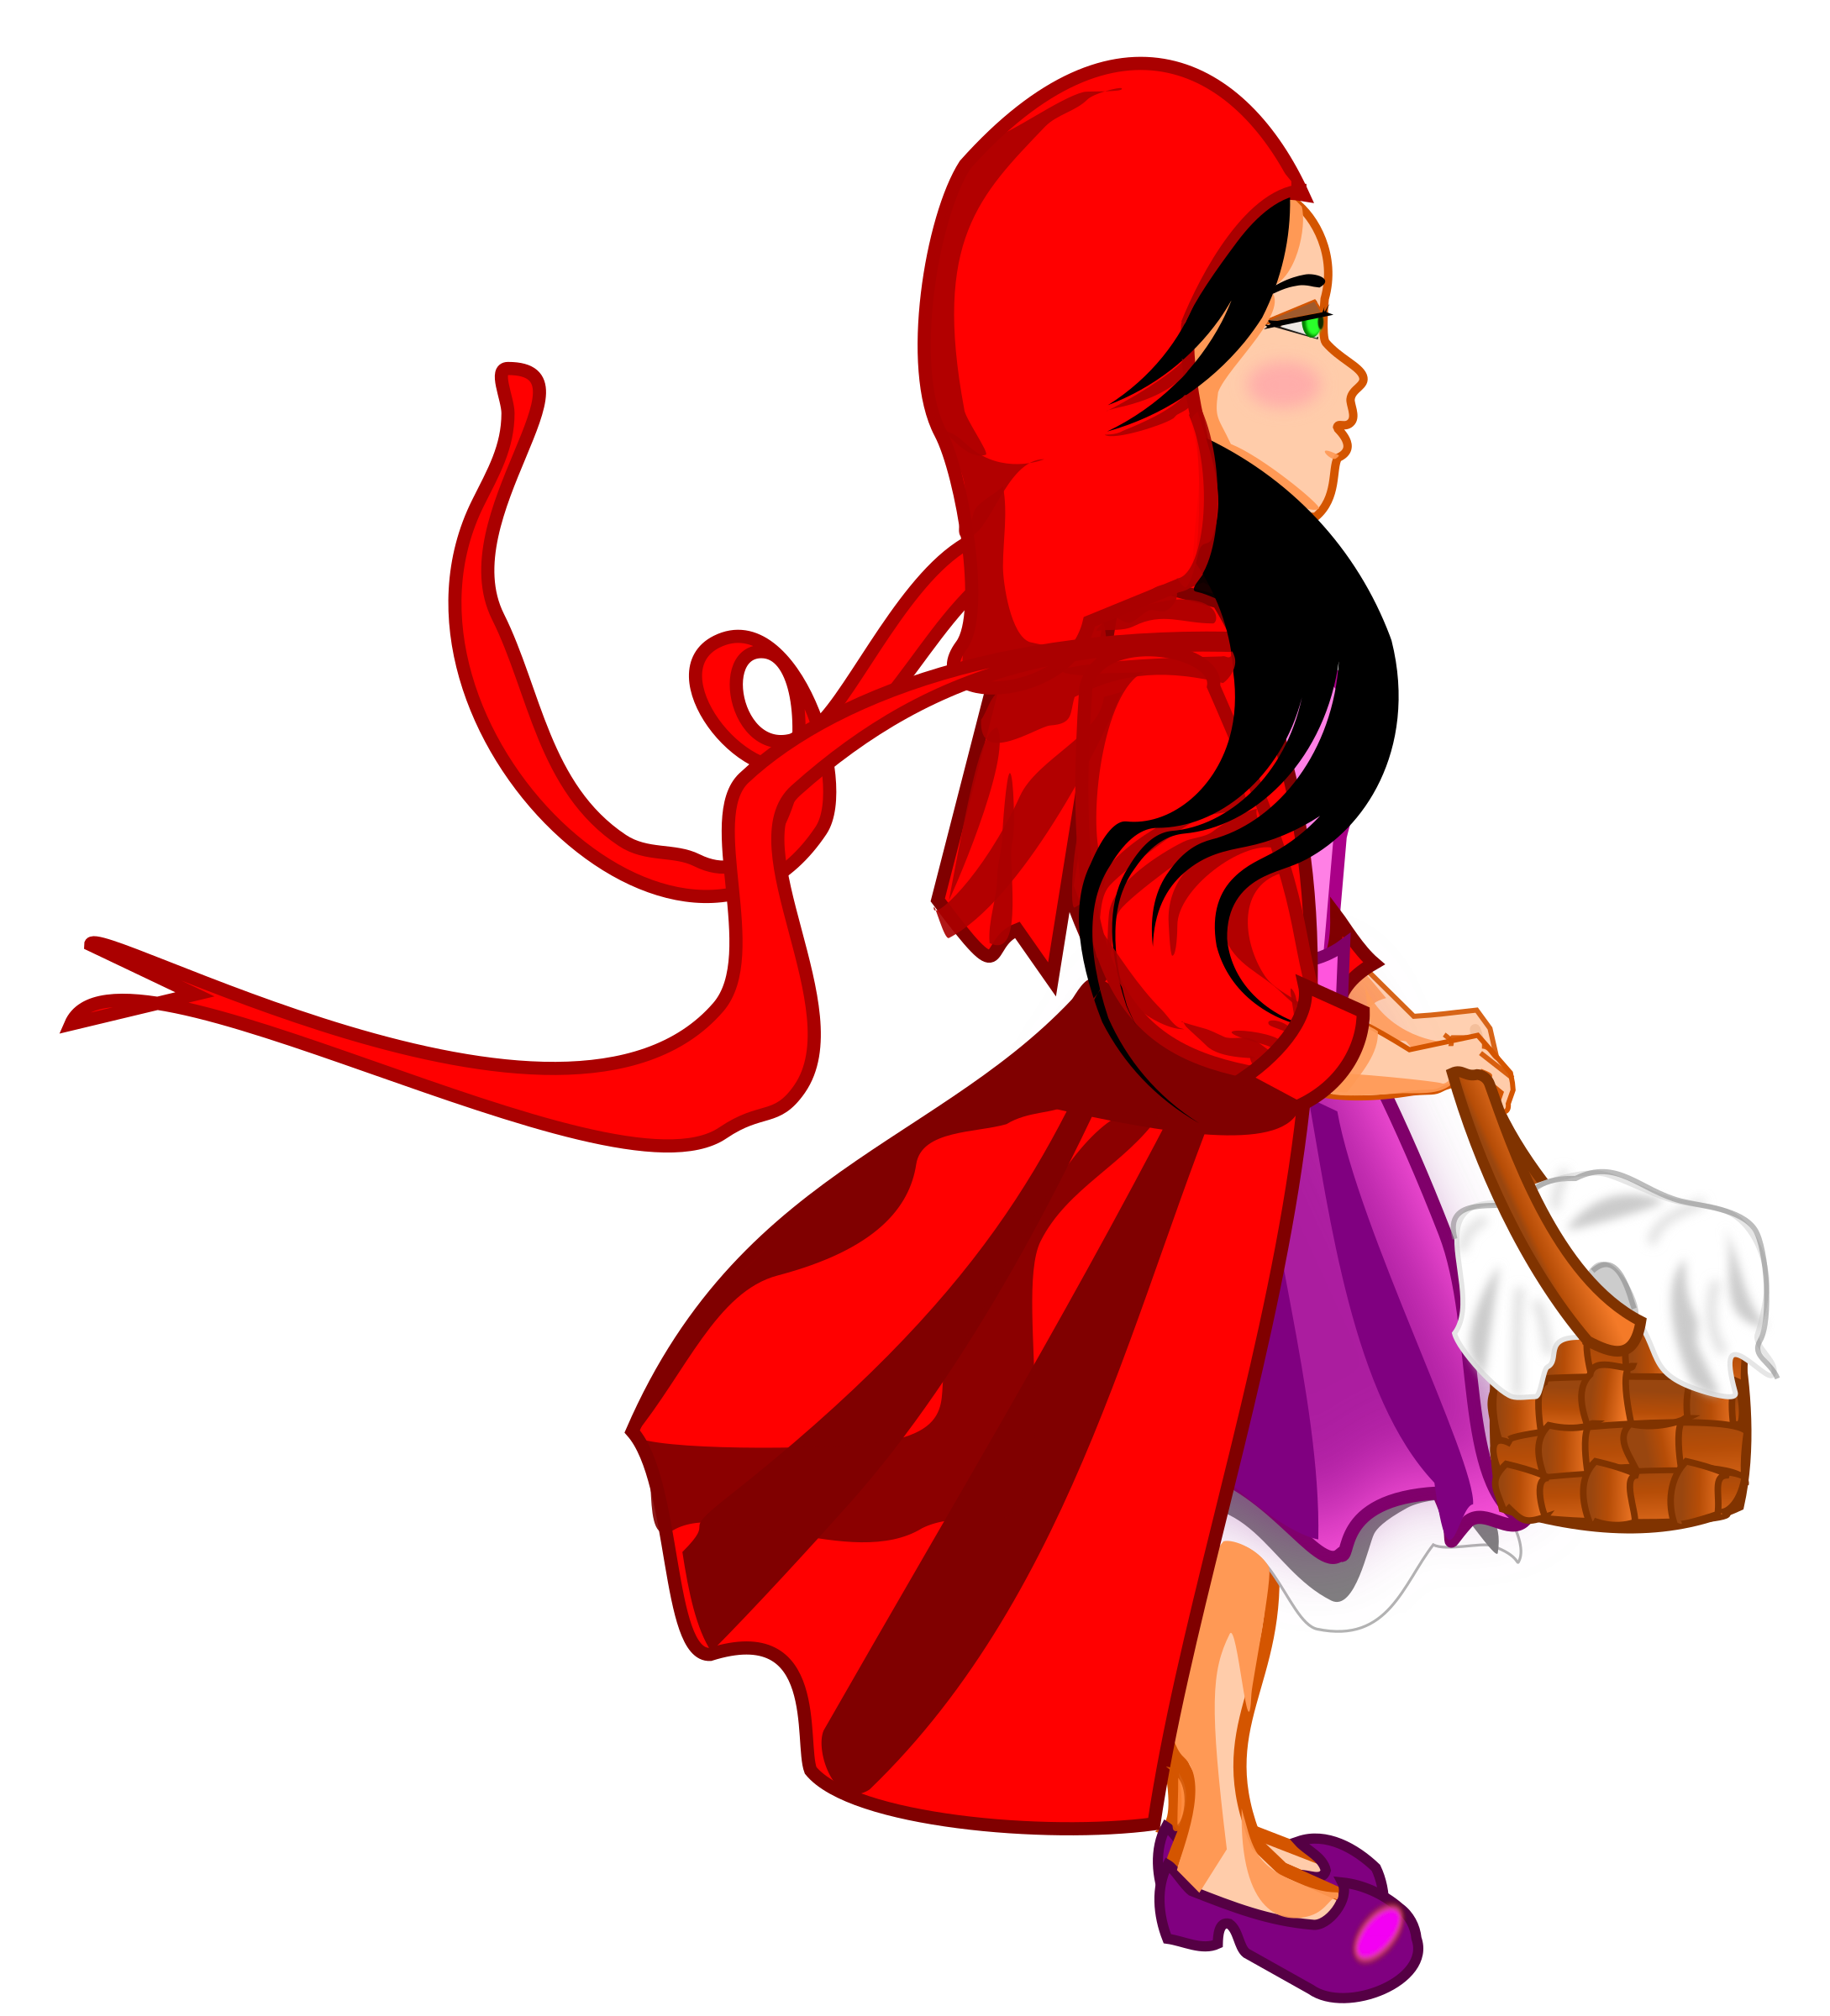 Wagon clipart little red wagon. Cap icons png free